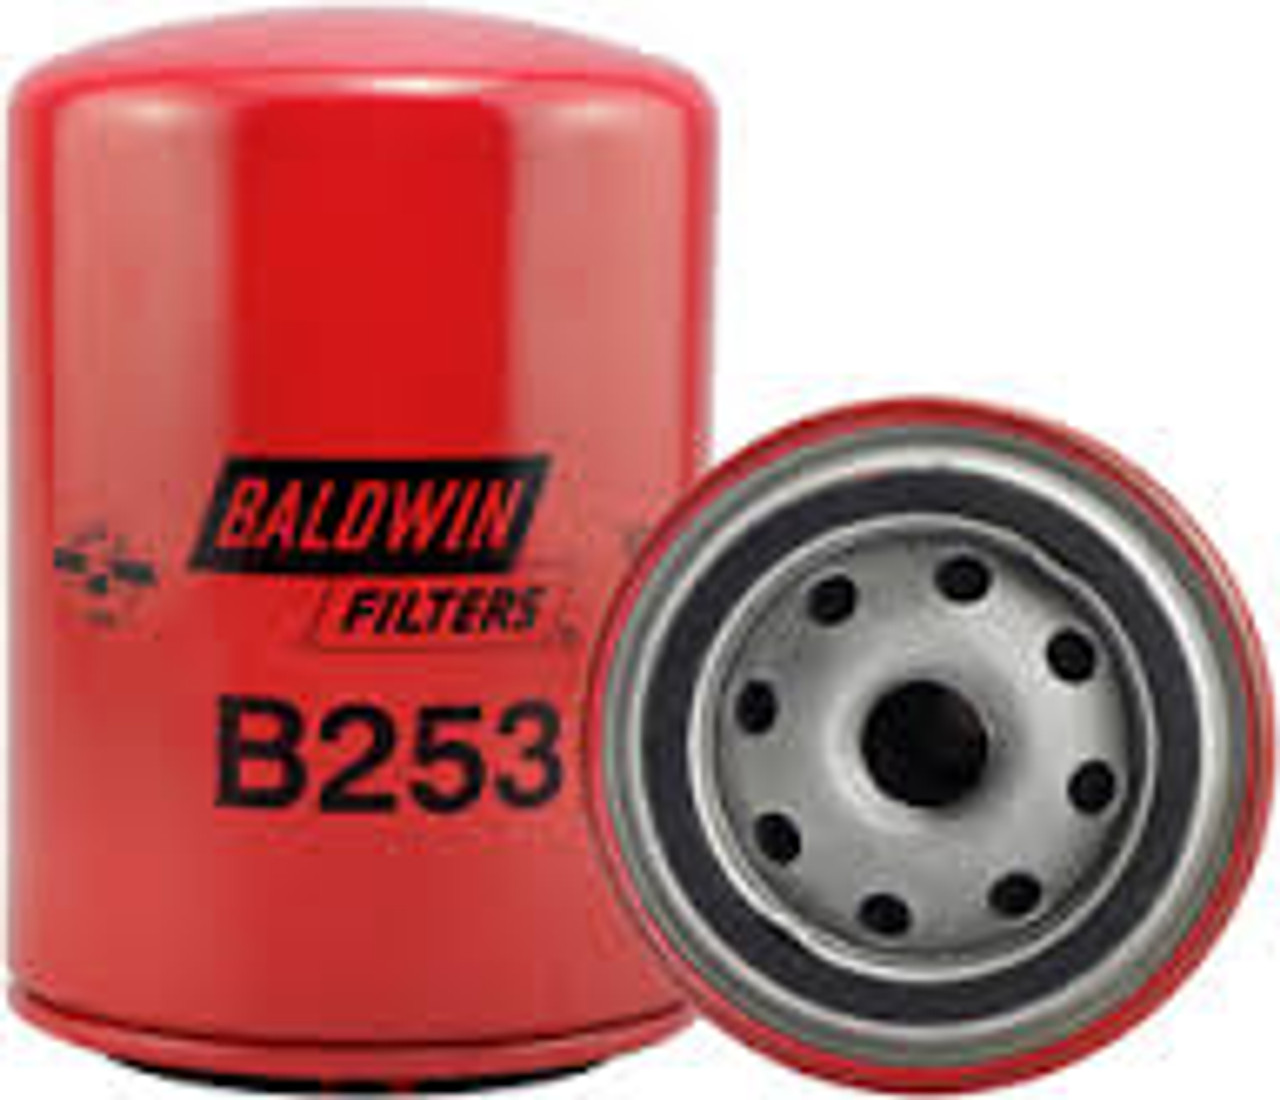 Baldwin Oil Filter Ford B-253